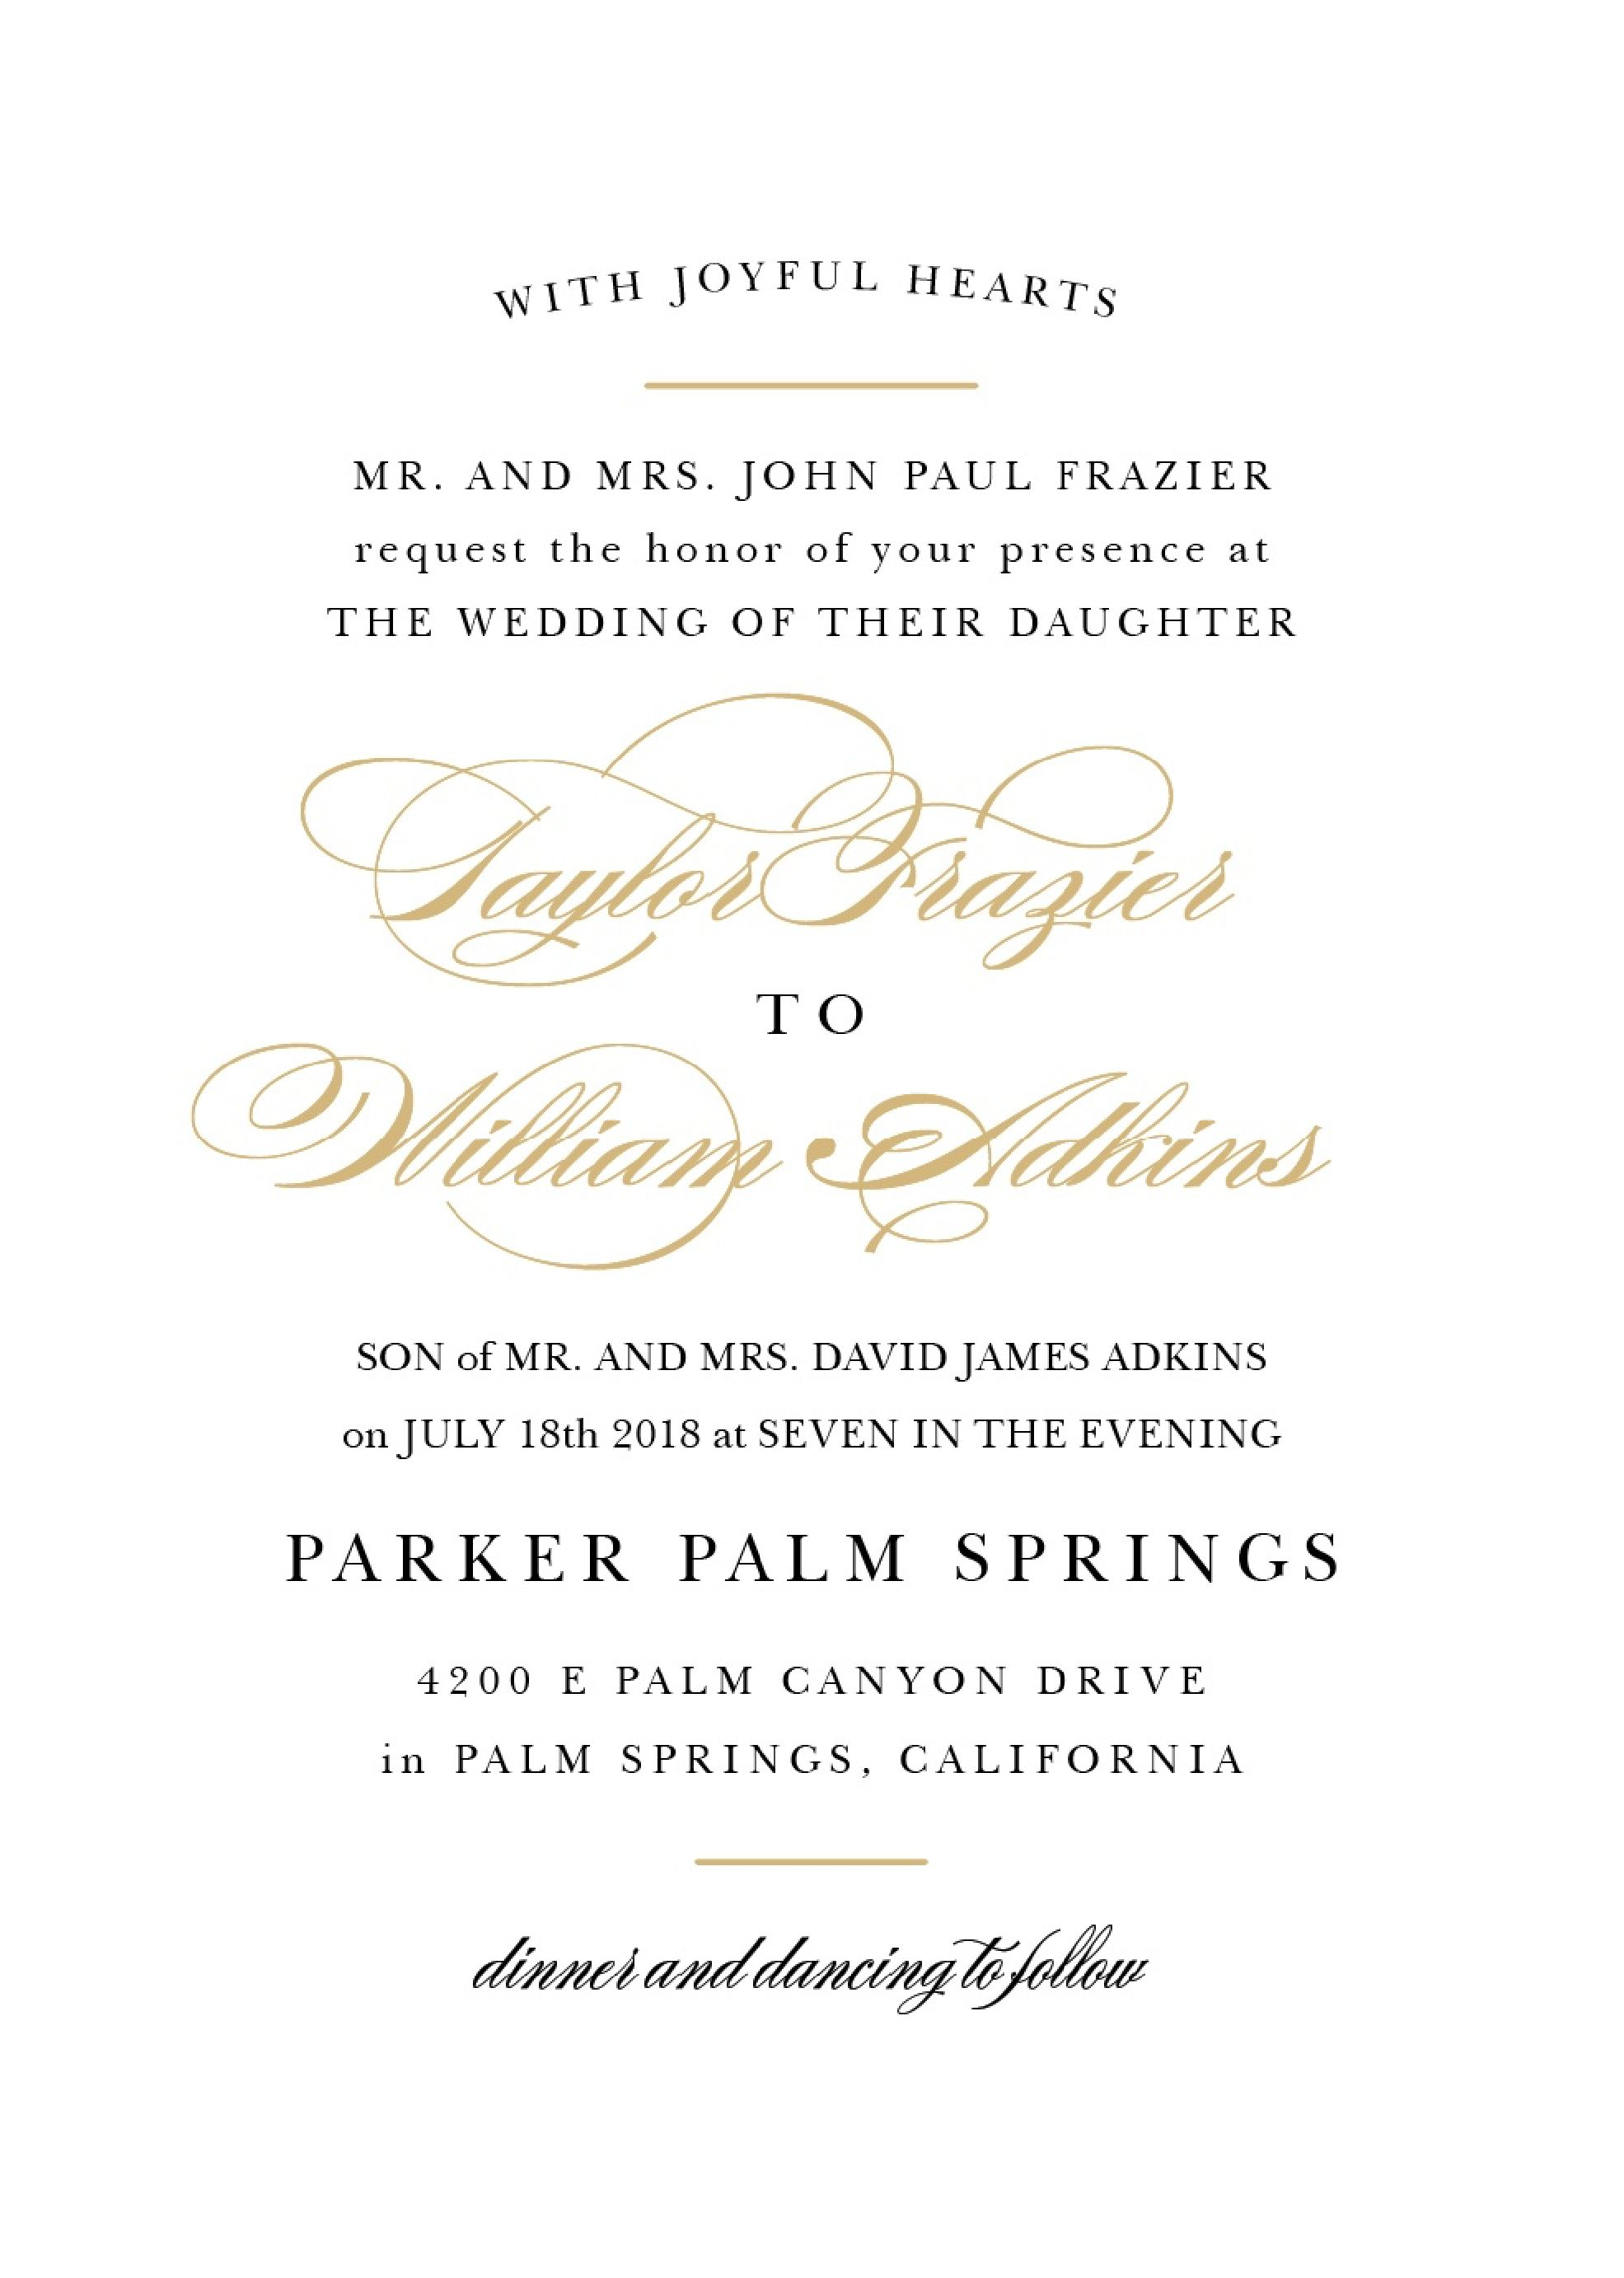 007 Shocking Wedding Invite Wording Template Highest Clarity  Templates Chinese Invitation Microsoft Word From Bride And Groom Example InvitingFull